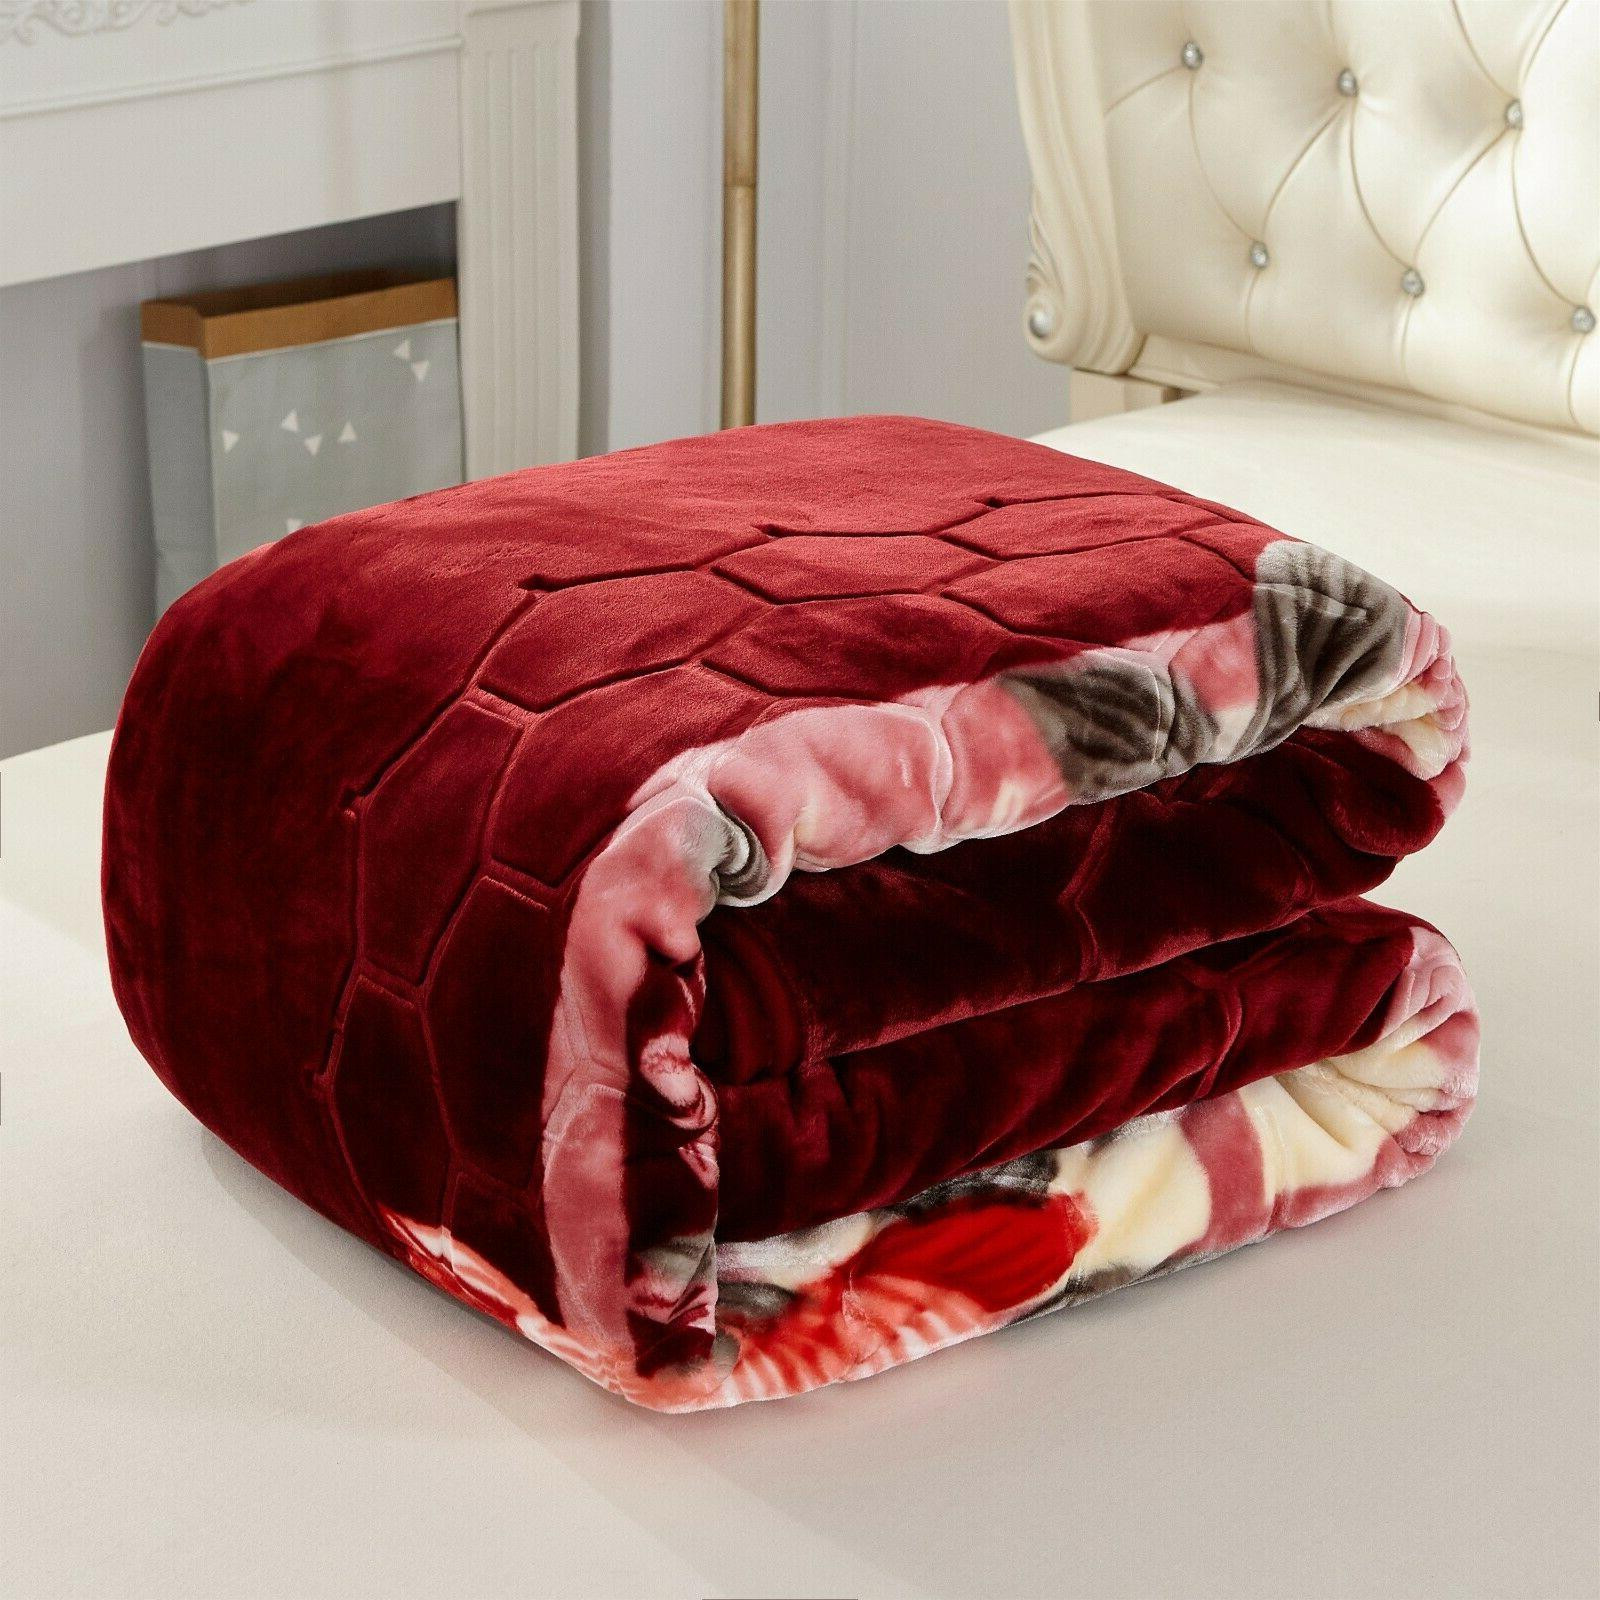 Heavy Thick Blanket Winter Warm Blanket King size Bed Lbs